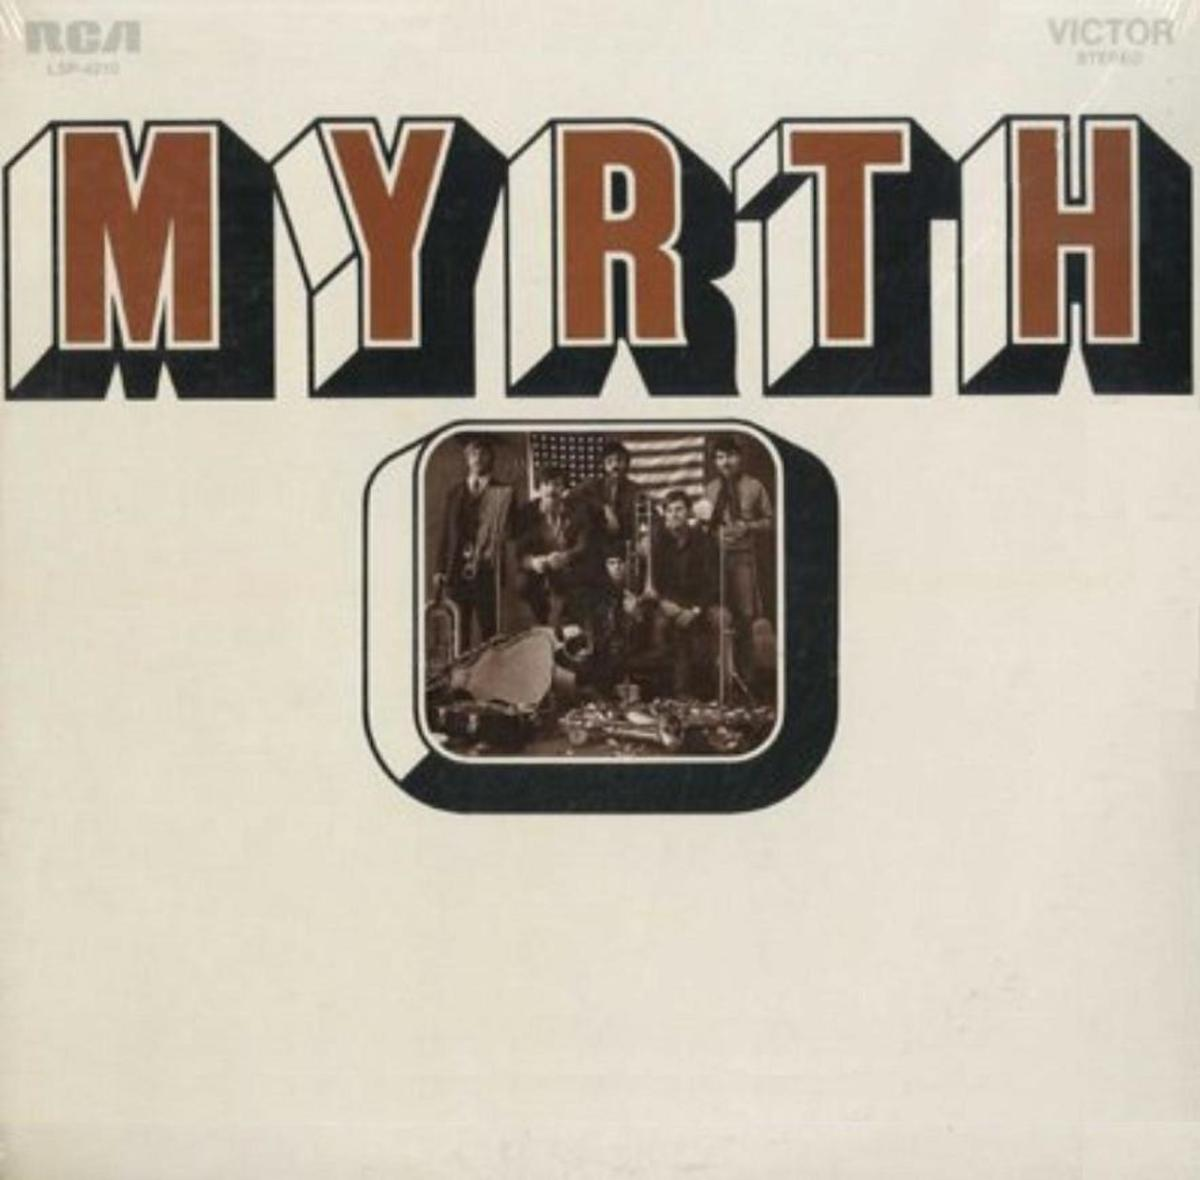 The Music of a 1960s Jazz Rock Band Called Myrth